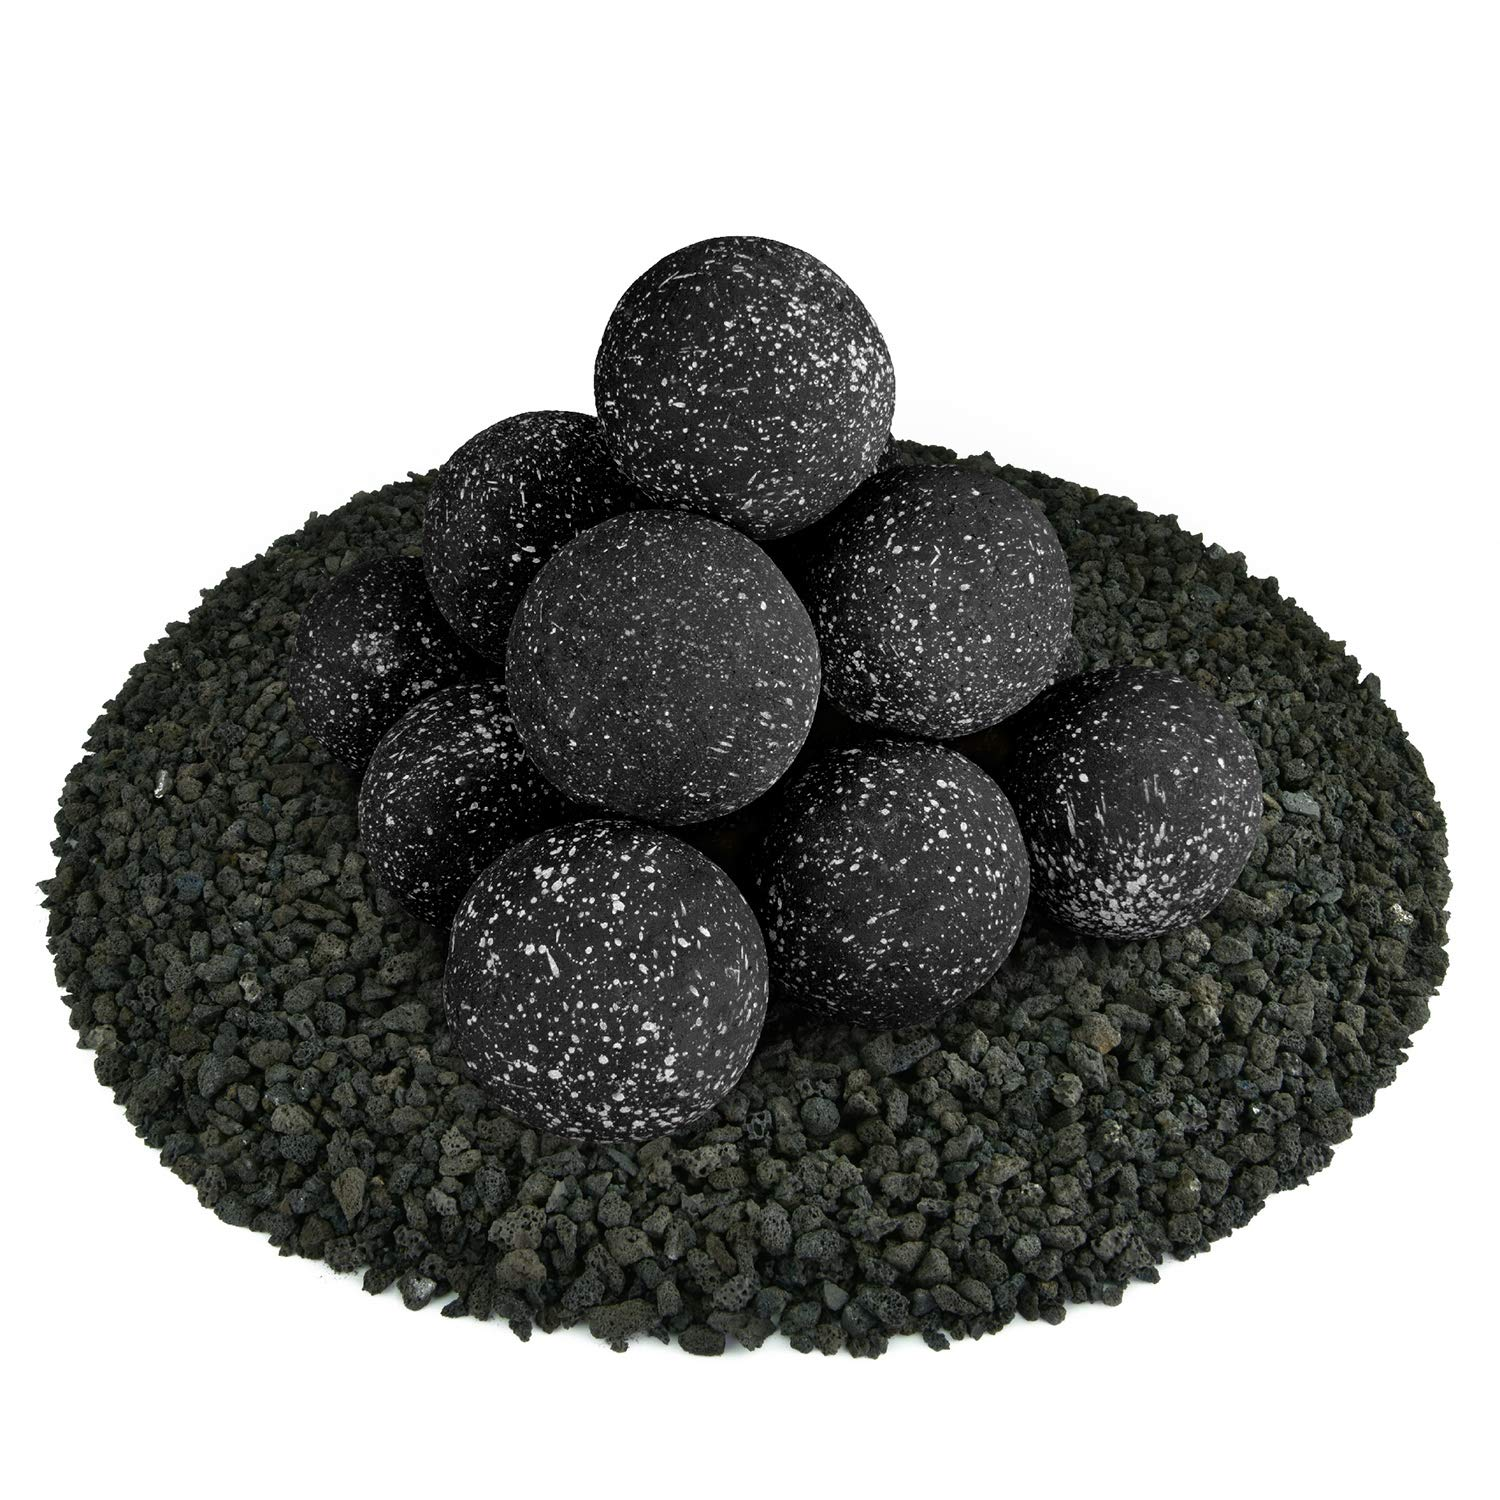 Ceramic Fire Balls | Set of 14 | Modern Accessory for Indoor and Outdoor Fire Pits or Fireplaces – Brushed Concrete Look | Midnight Black, Speckled, 4 Inch